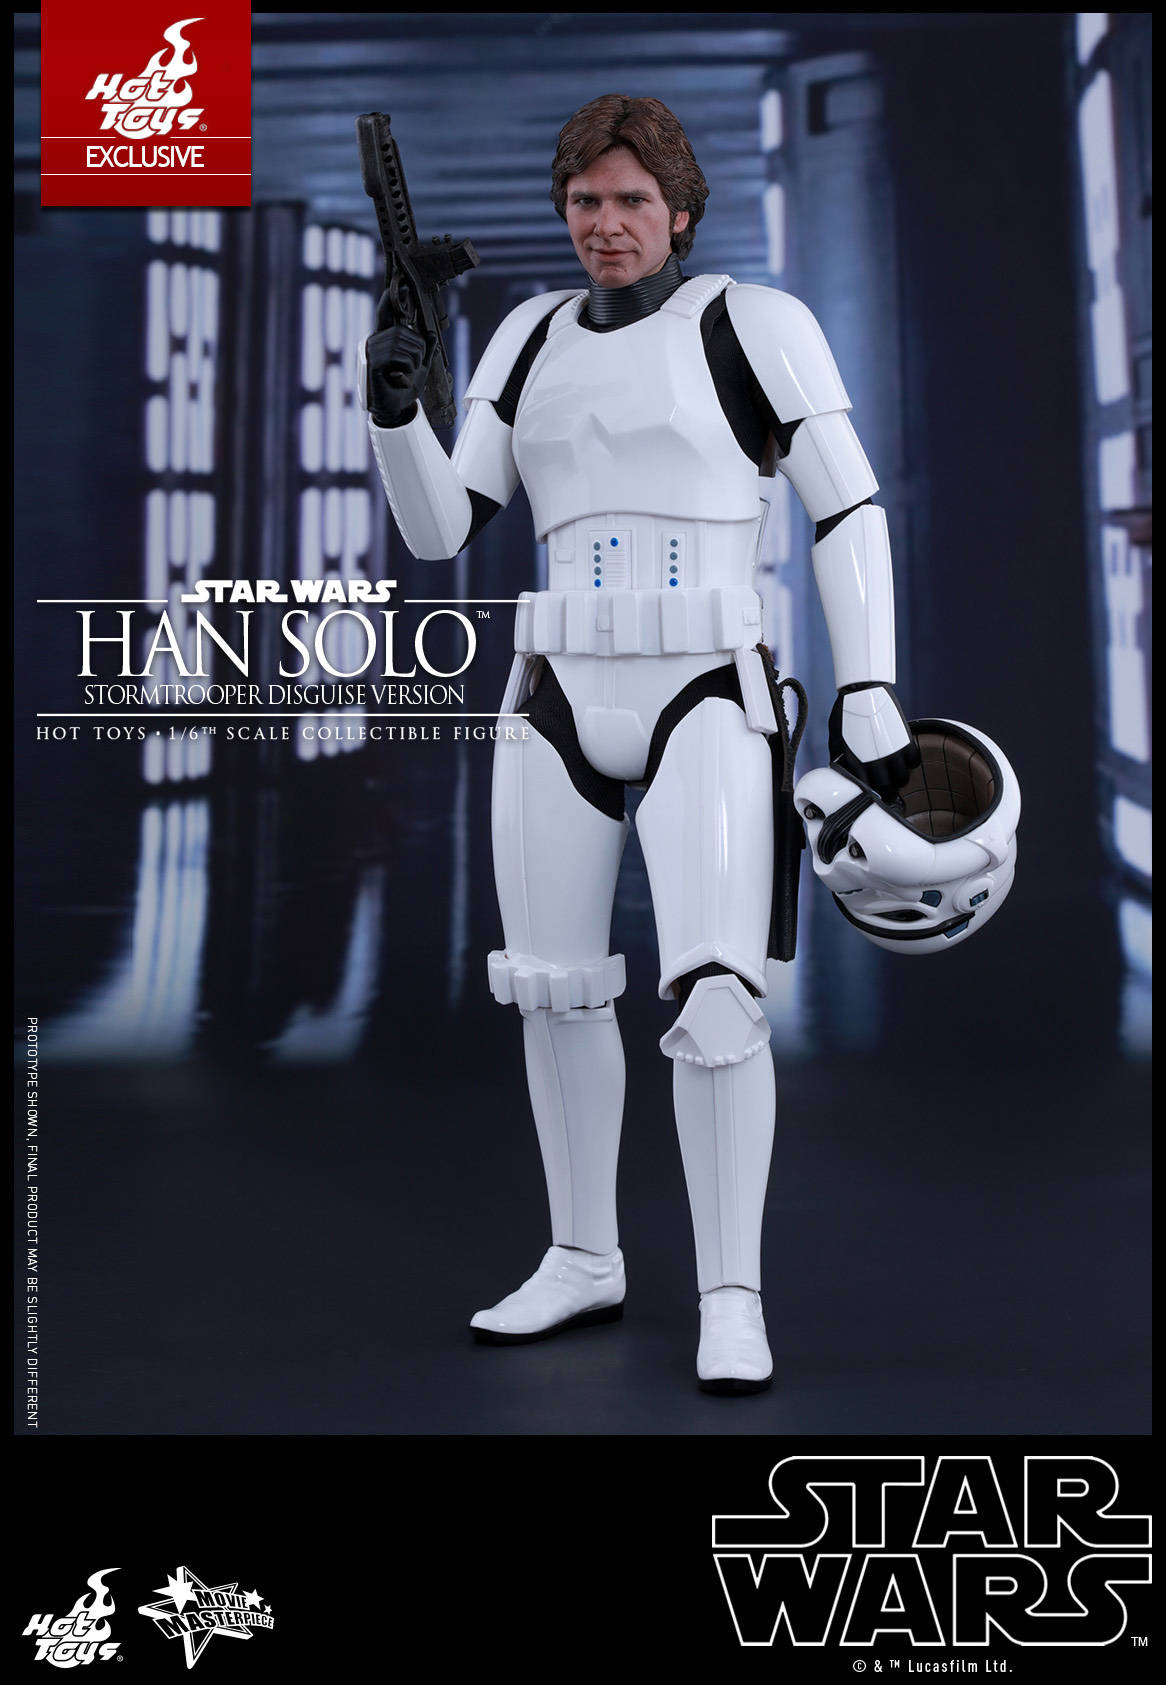 Hot-Toys---Star-Wars---Han-Solo-(Stormtrooper-Disguise-Version)-Collectible-Figure PR1